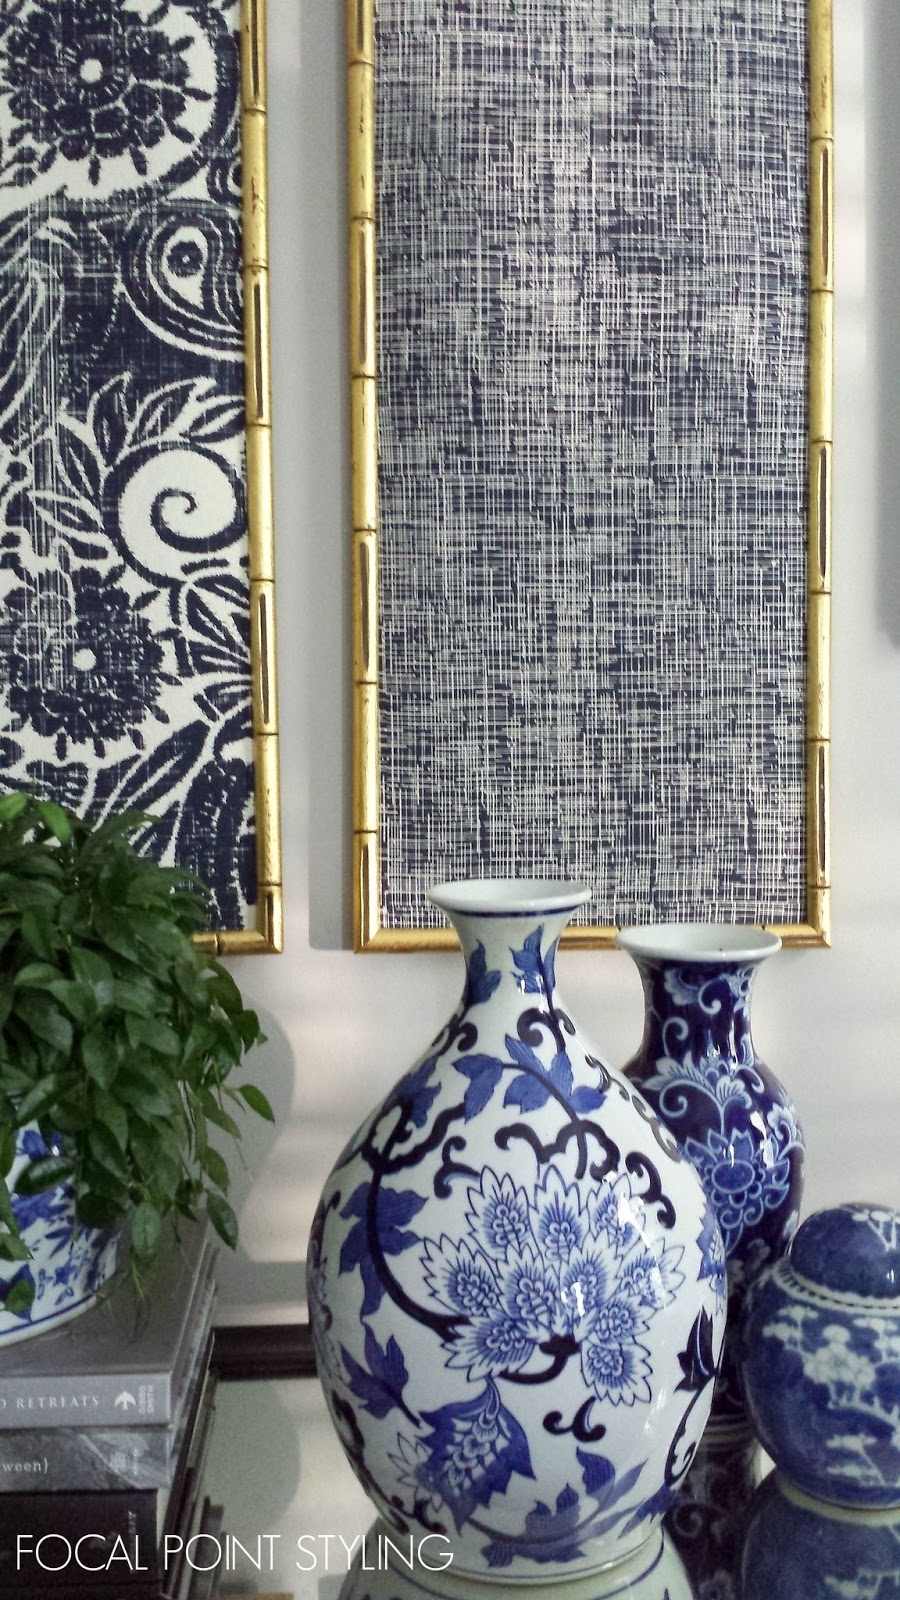 Focal Point Styling: Diy Indigo Wall Art With Framed Fabric Regarding Recent White Fabric Wall Art (View 9 of 15)